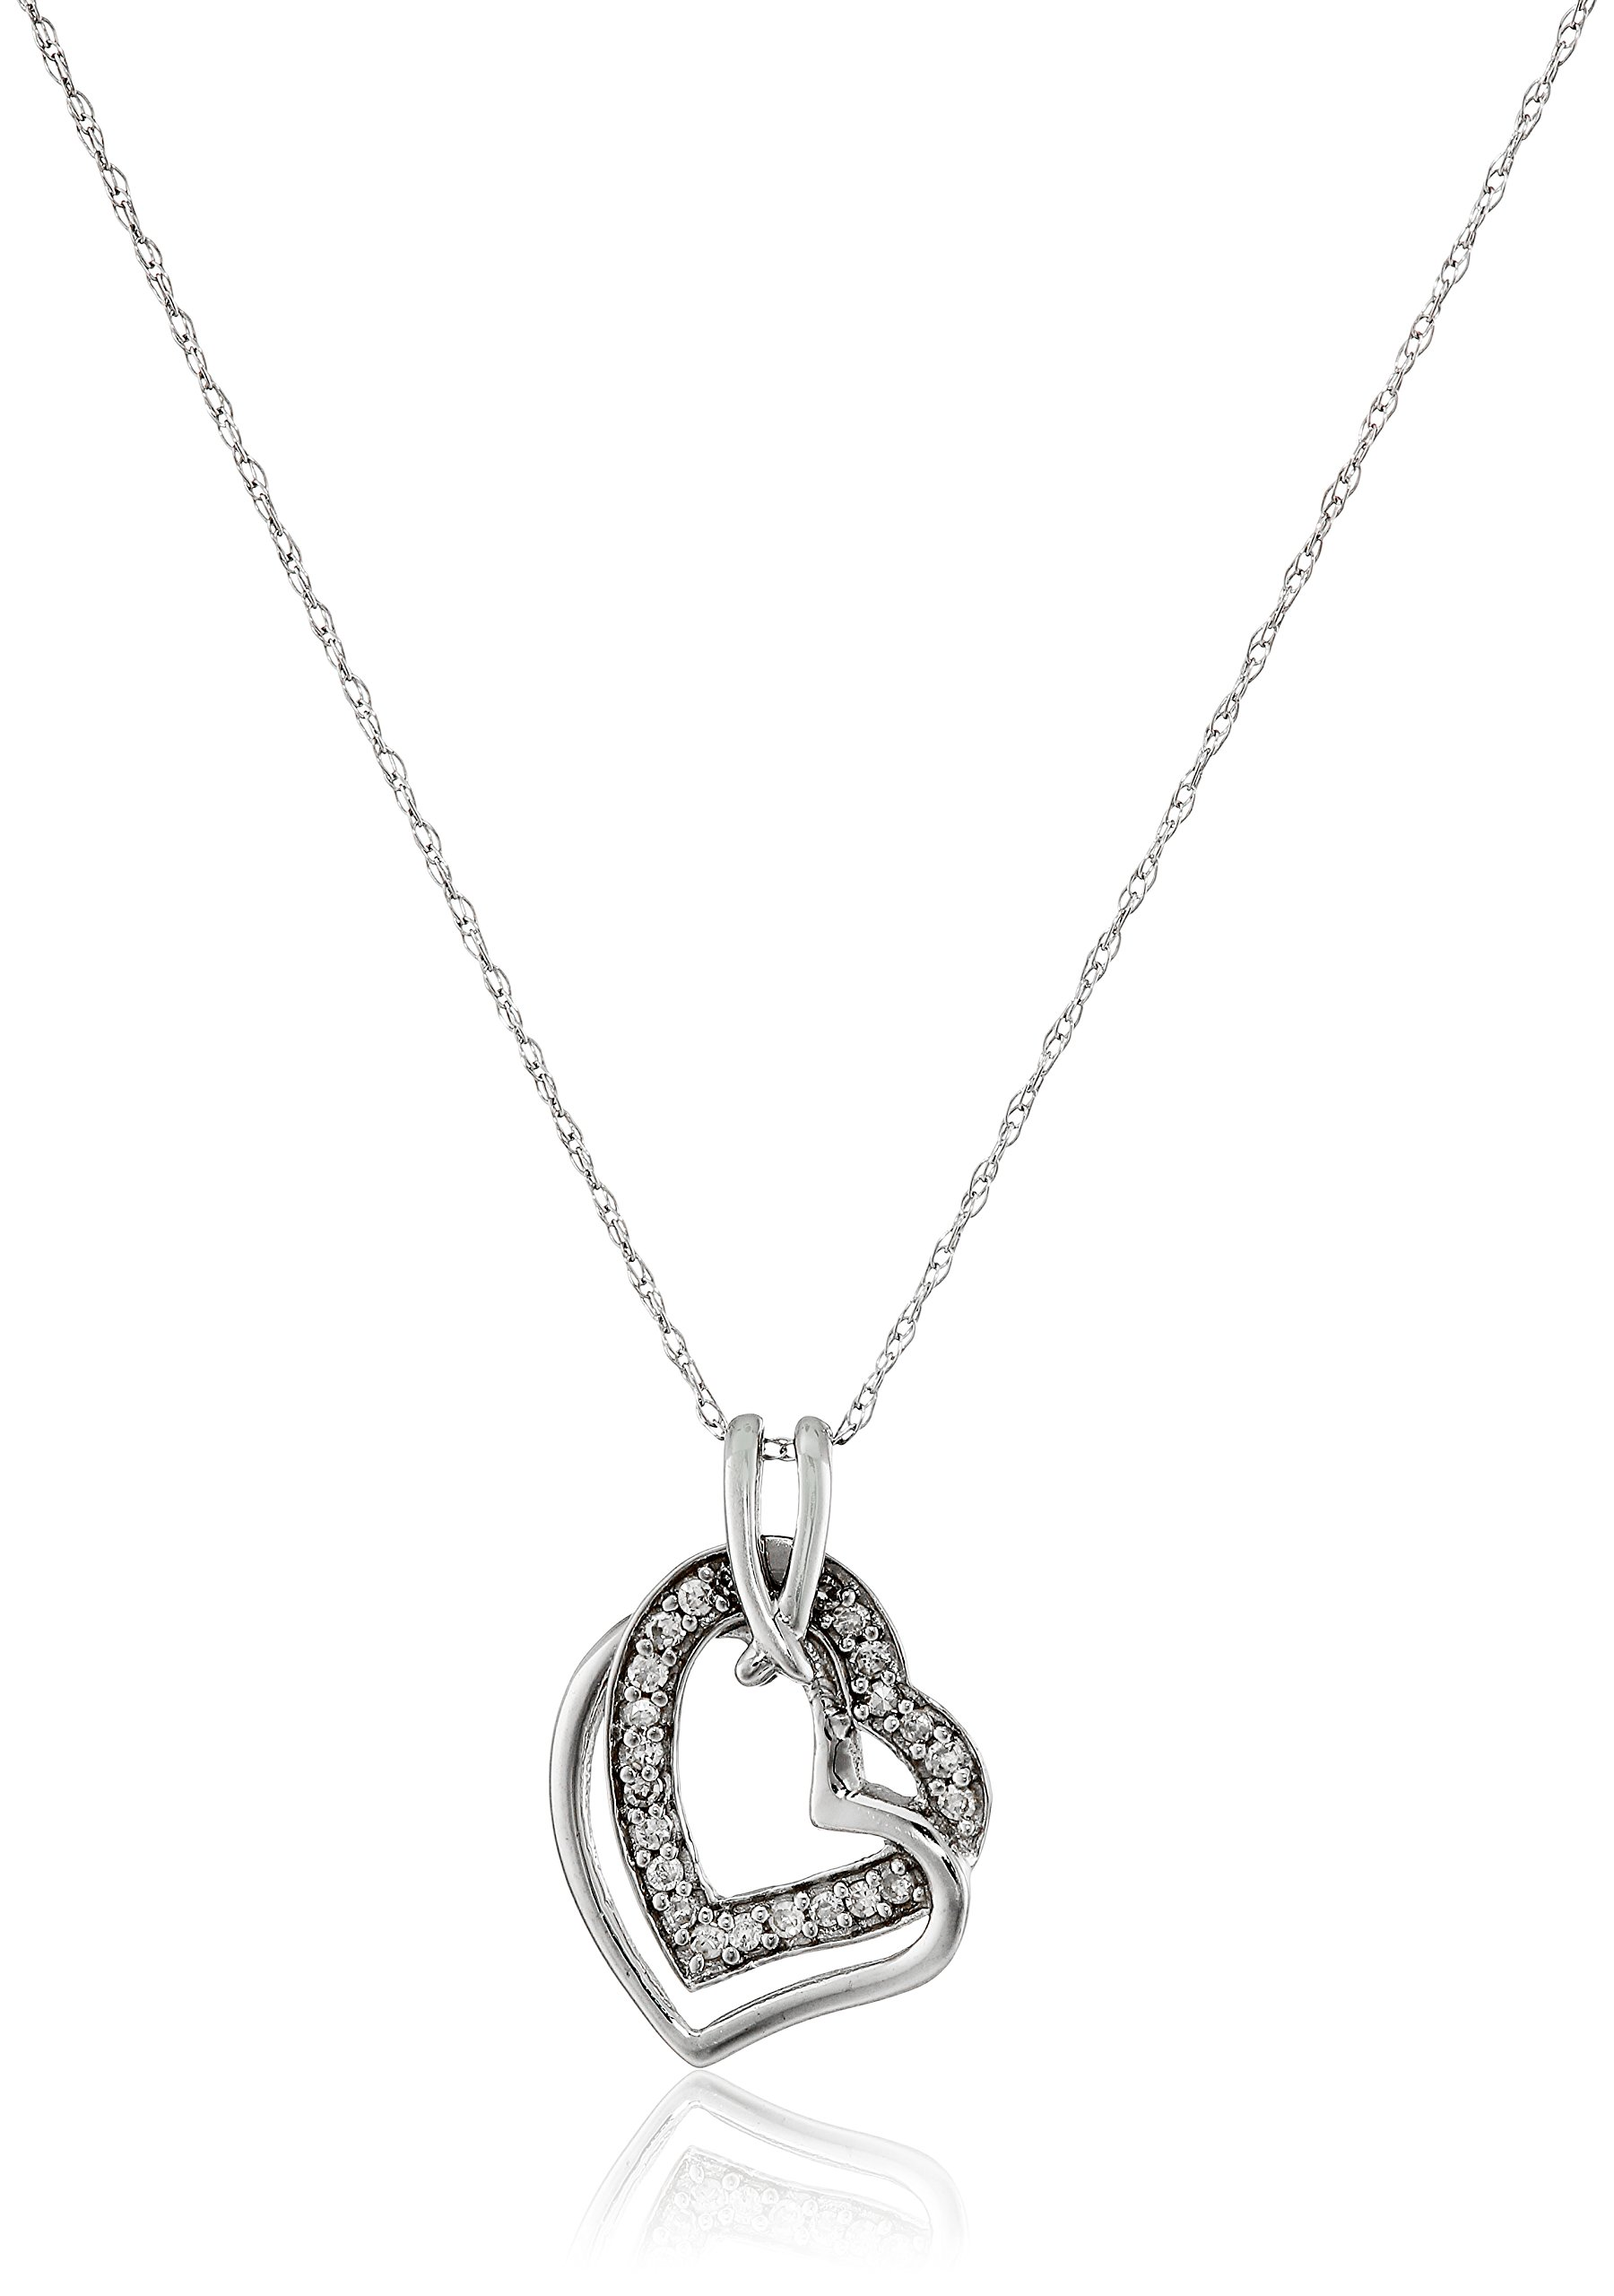 10k White Gold Diamond Heart Pendant Necklace (1/10cttw, I-J Color, I2-I3 Clarity), 18''